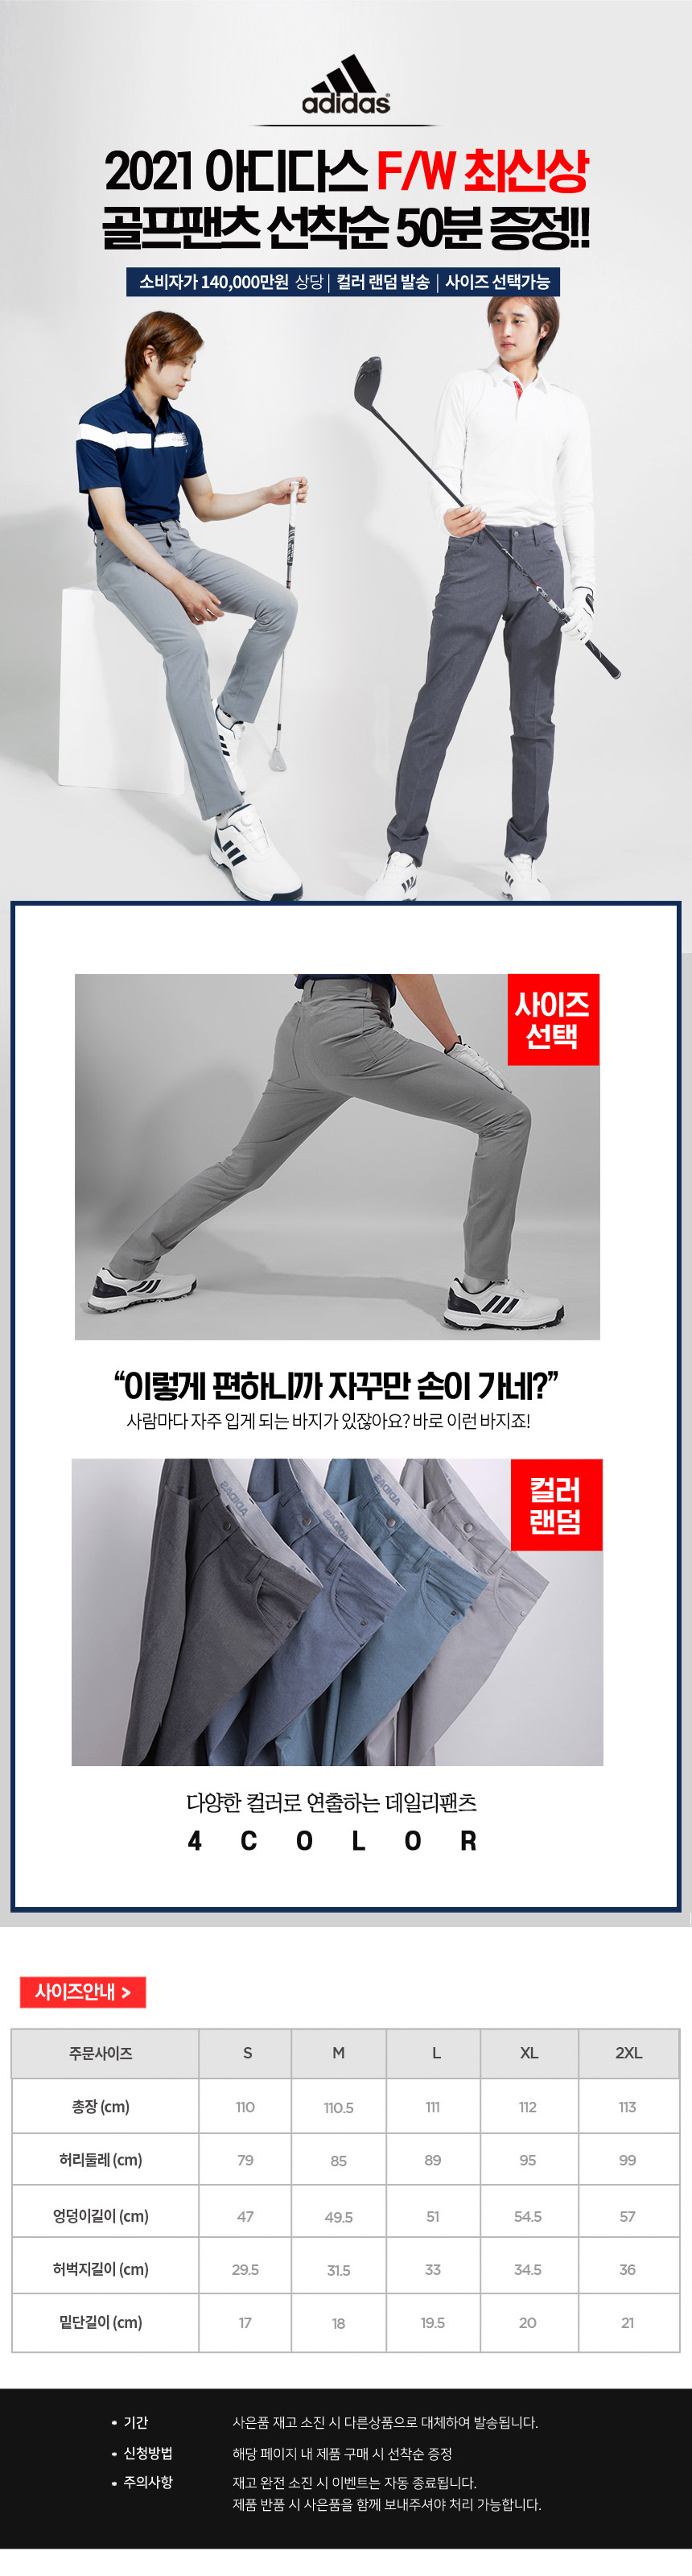 adidas_stretch_5pocket_pants_gift_20.jpg